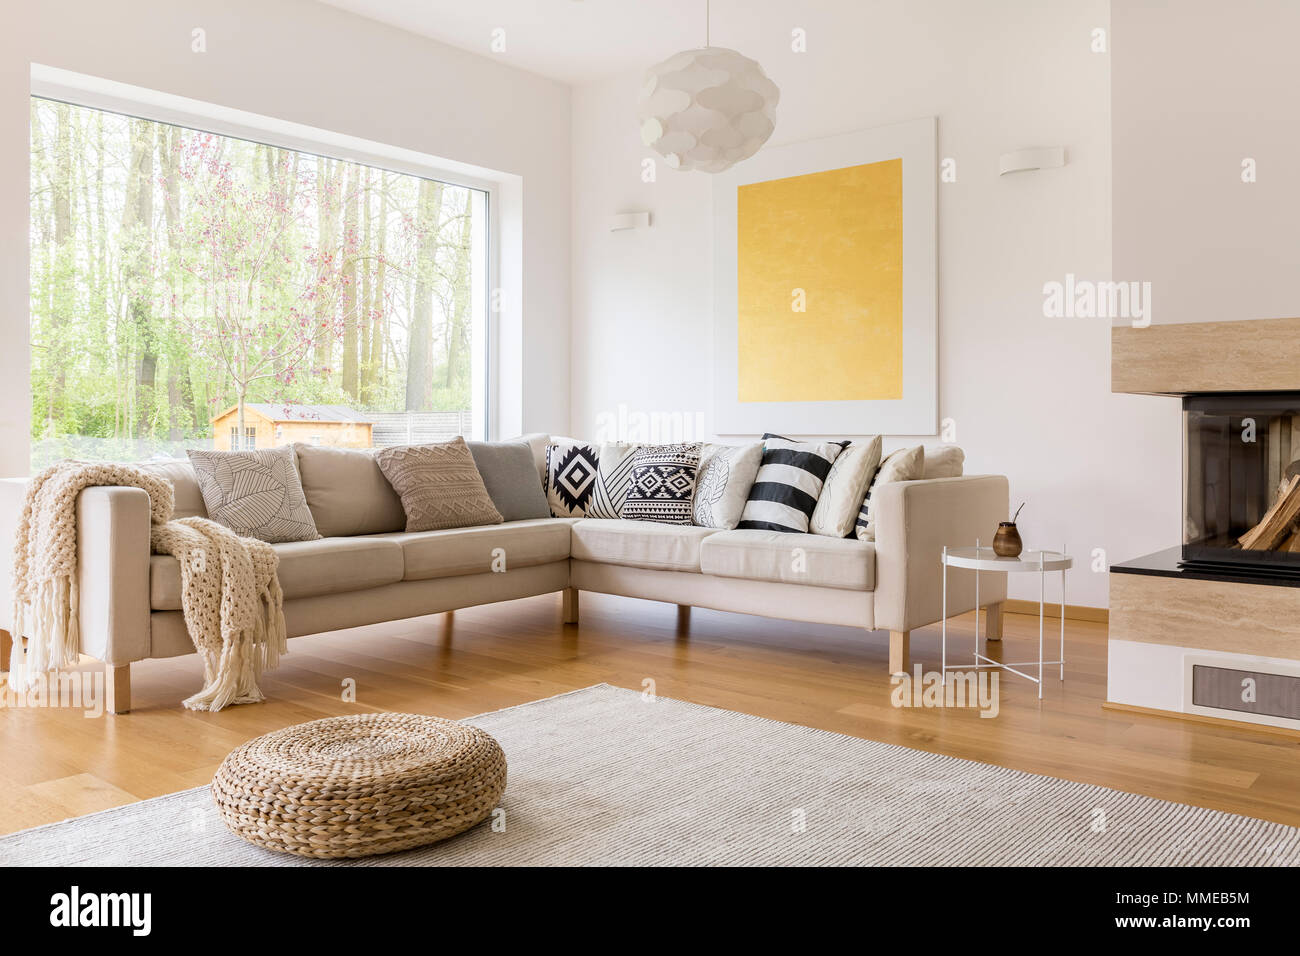 up to date design of cozy spacious lounge with white sofa and carpetup to date design of cozy spacious lounge with white sofa and carpet